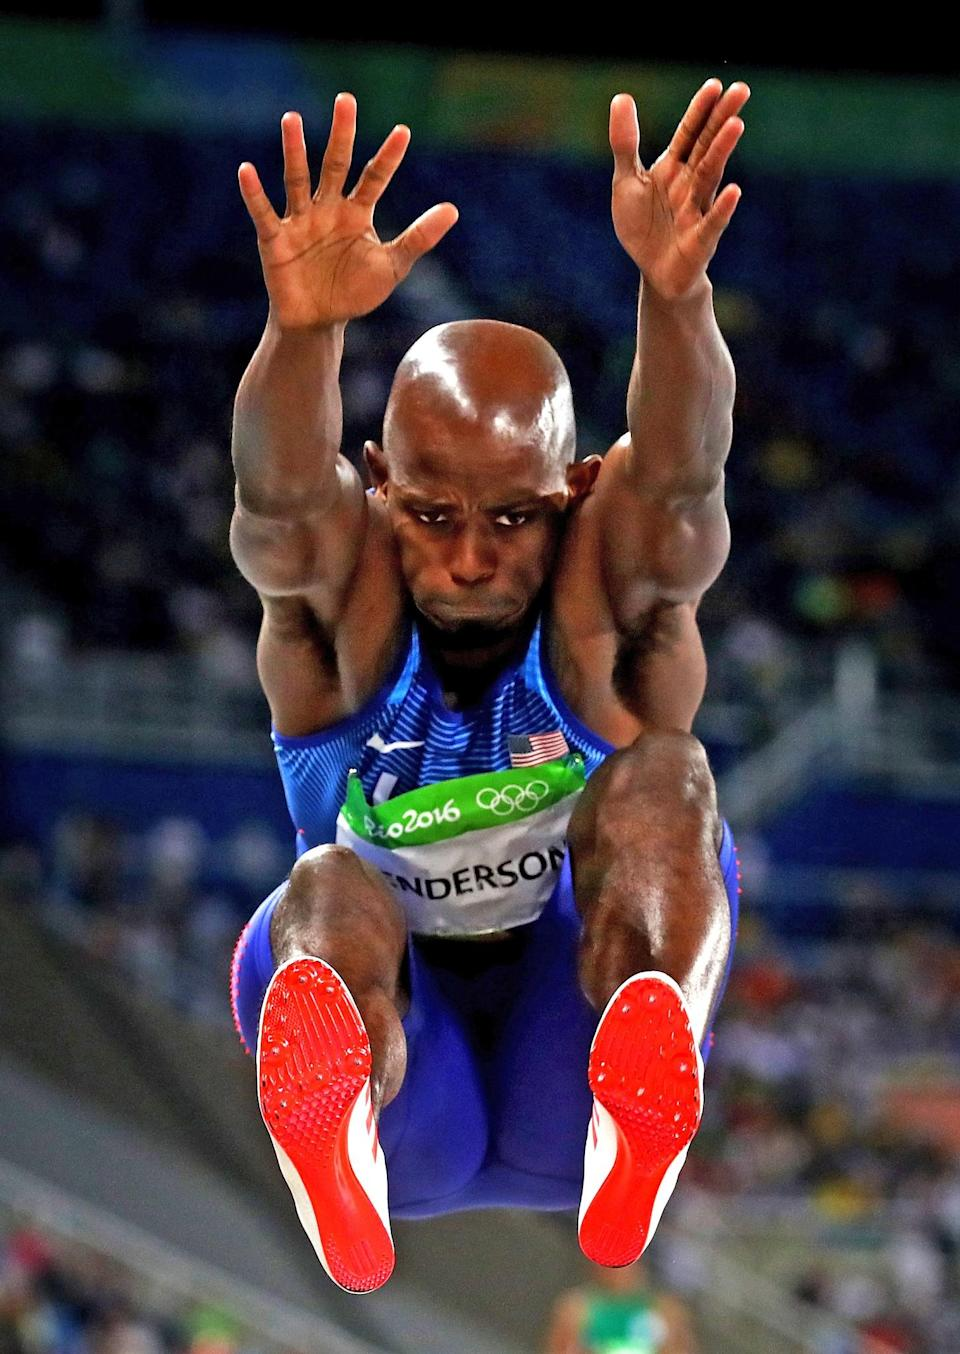 <p>Jeff Henderson of the United States competes during the Men's Long Jump Final on Day 8 of the Rio 2016 Olympic Games at the Olympic Stadium on August 13, 2016 in Rio de Janeiro, Brazil. (Photo by Alexander Hassenstein/Getty Images) </p>